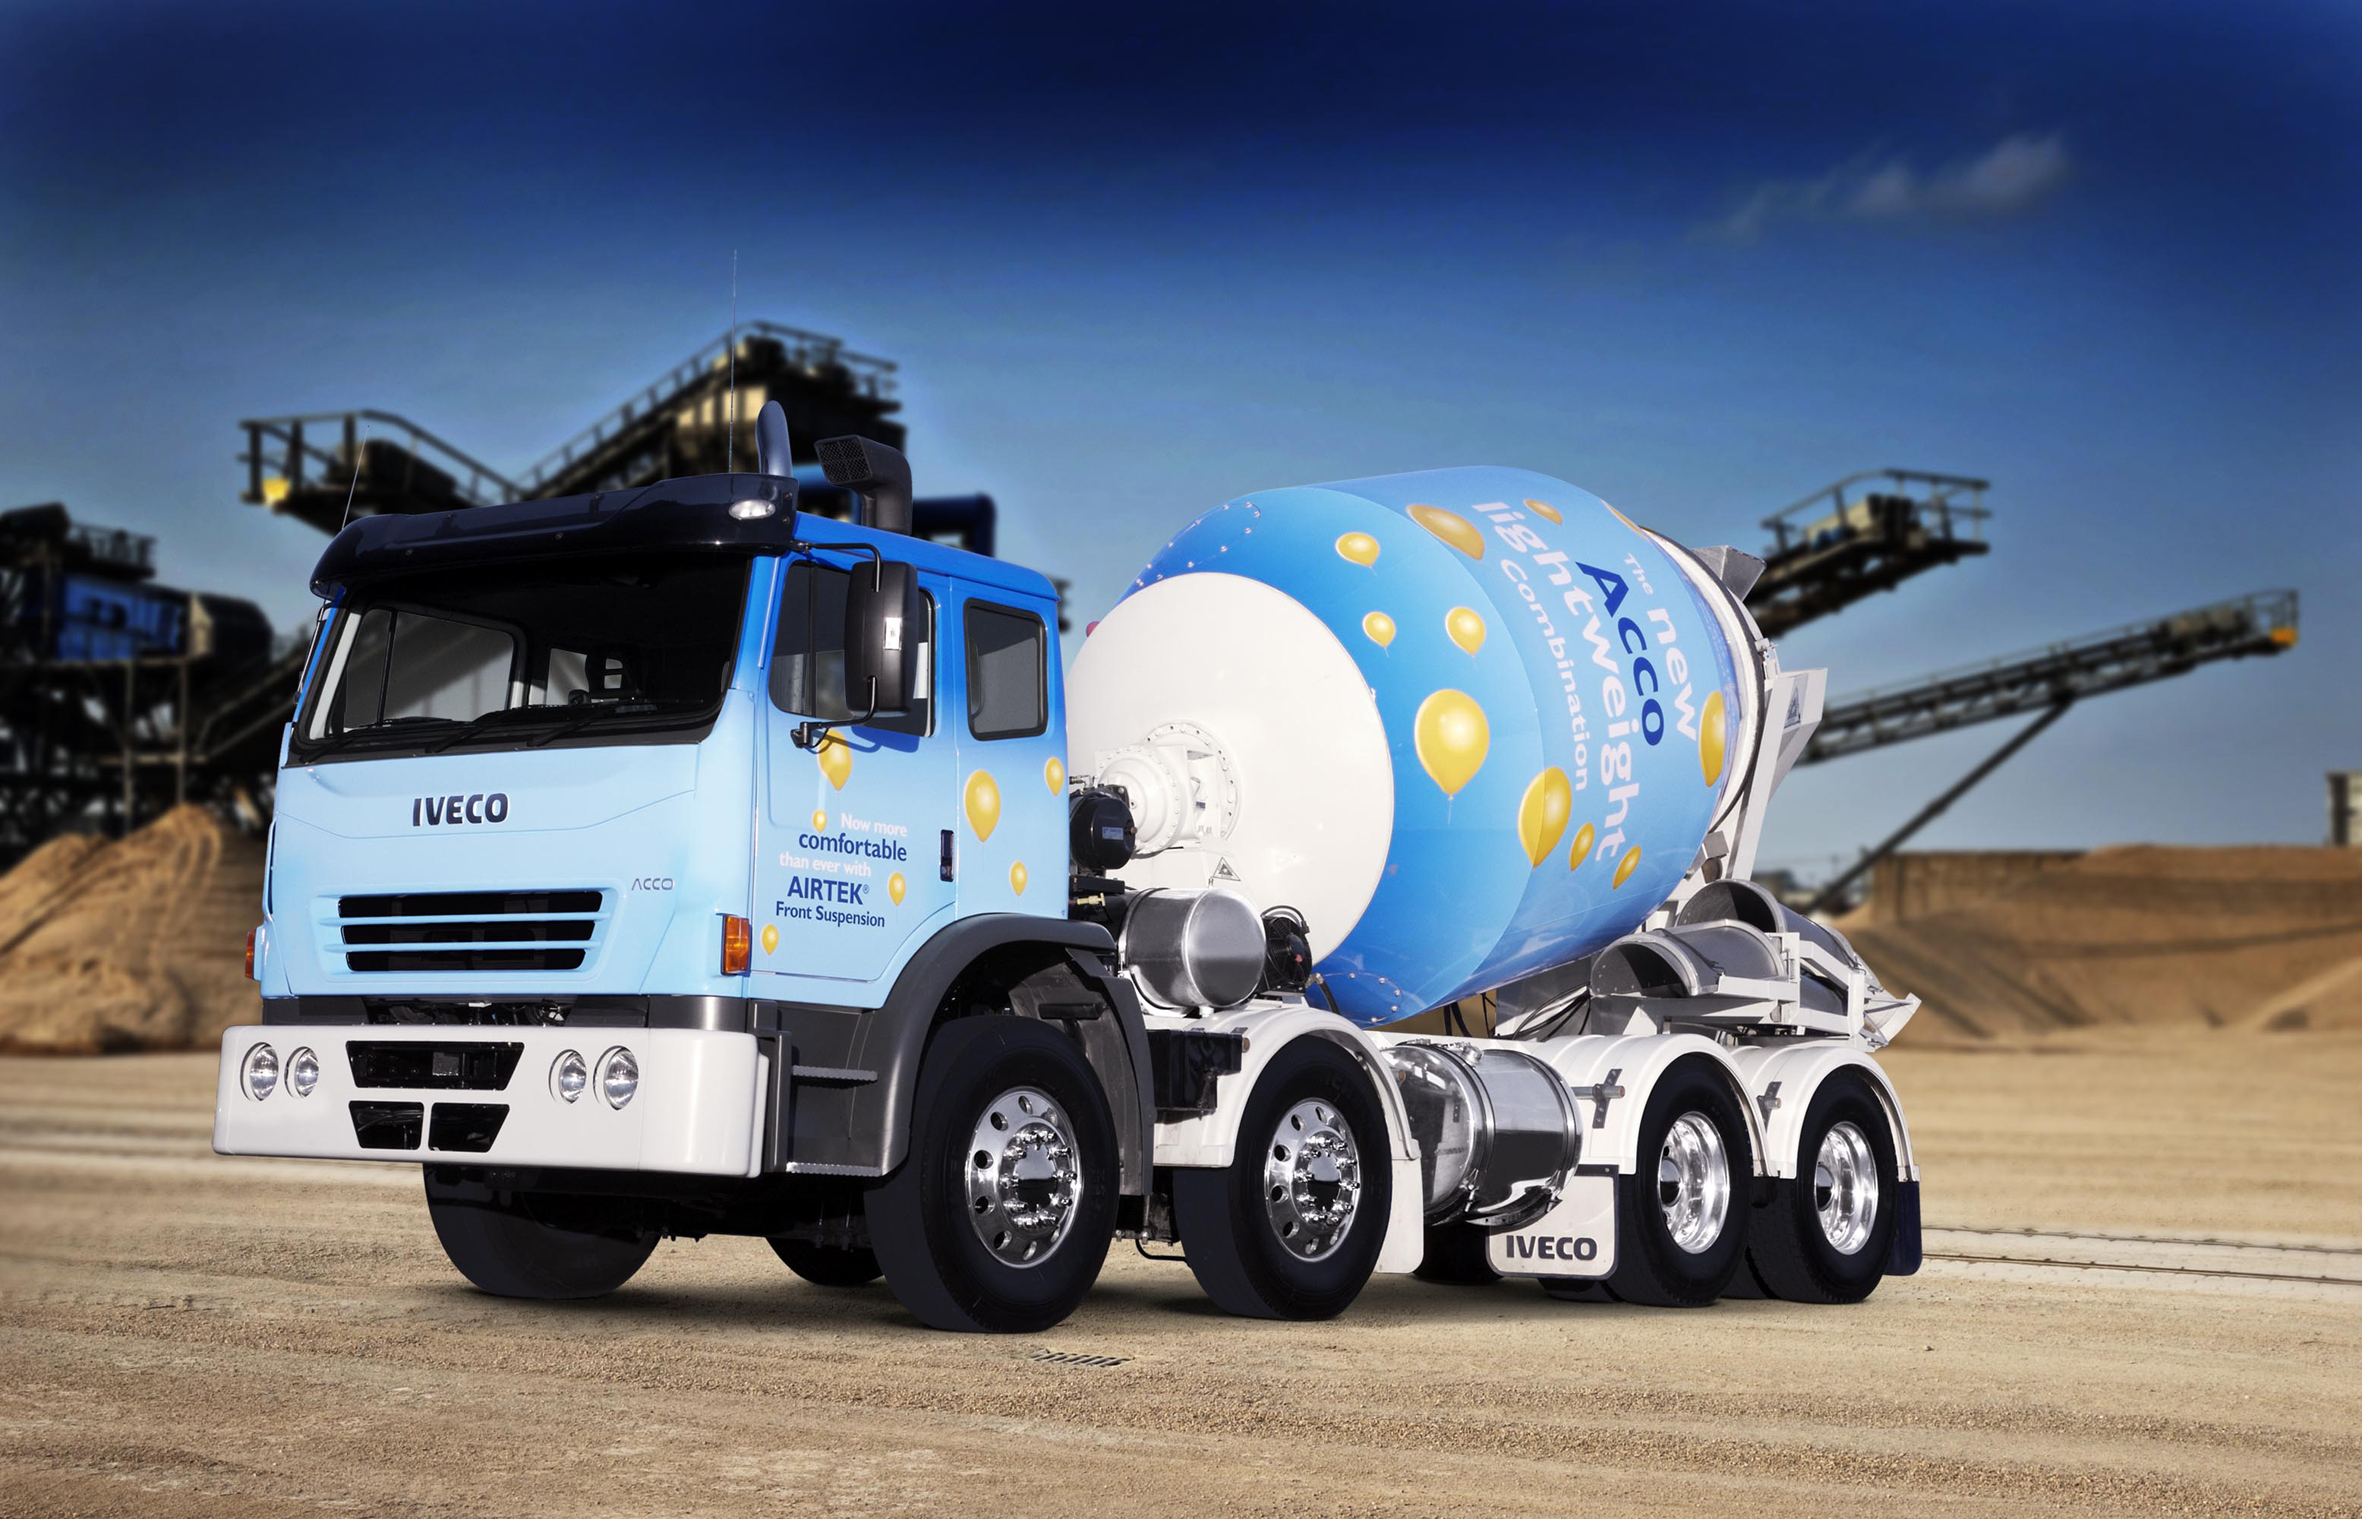 Iveco TurboDaily 4912V. View Download Wallpaper. 2362x1519. Comments